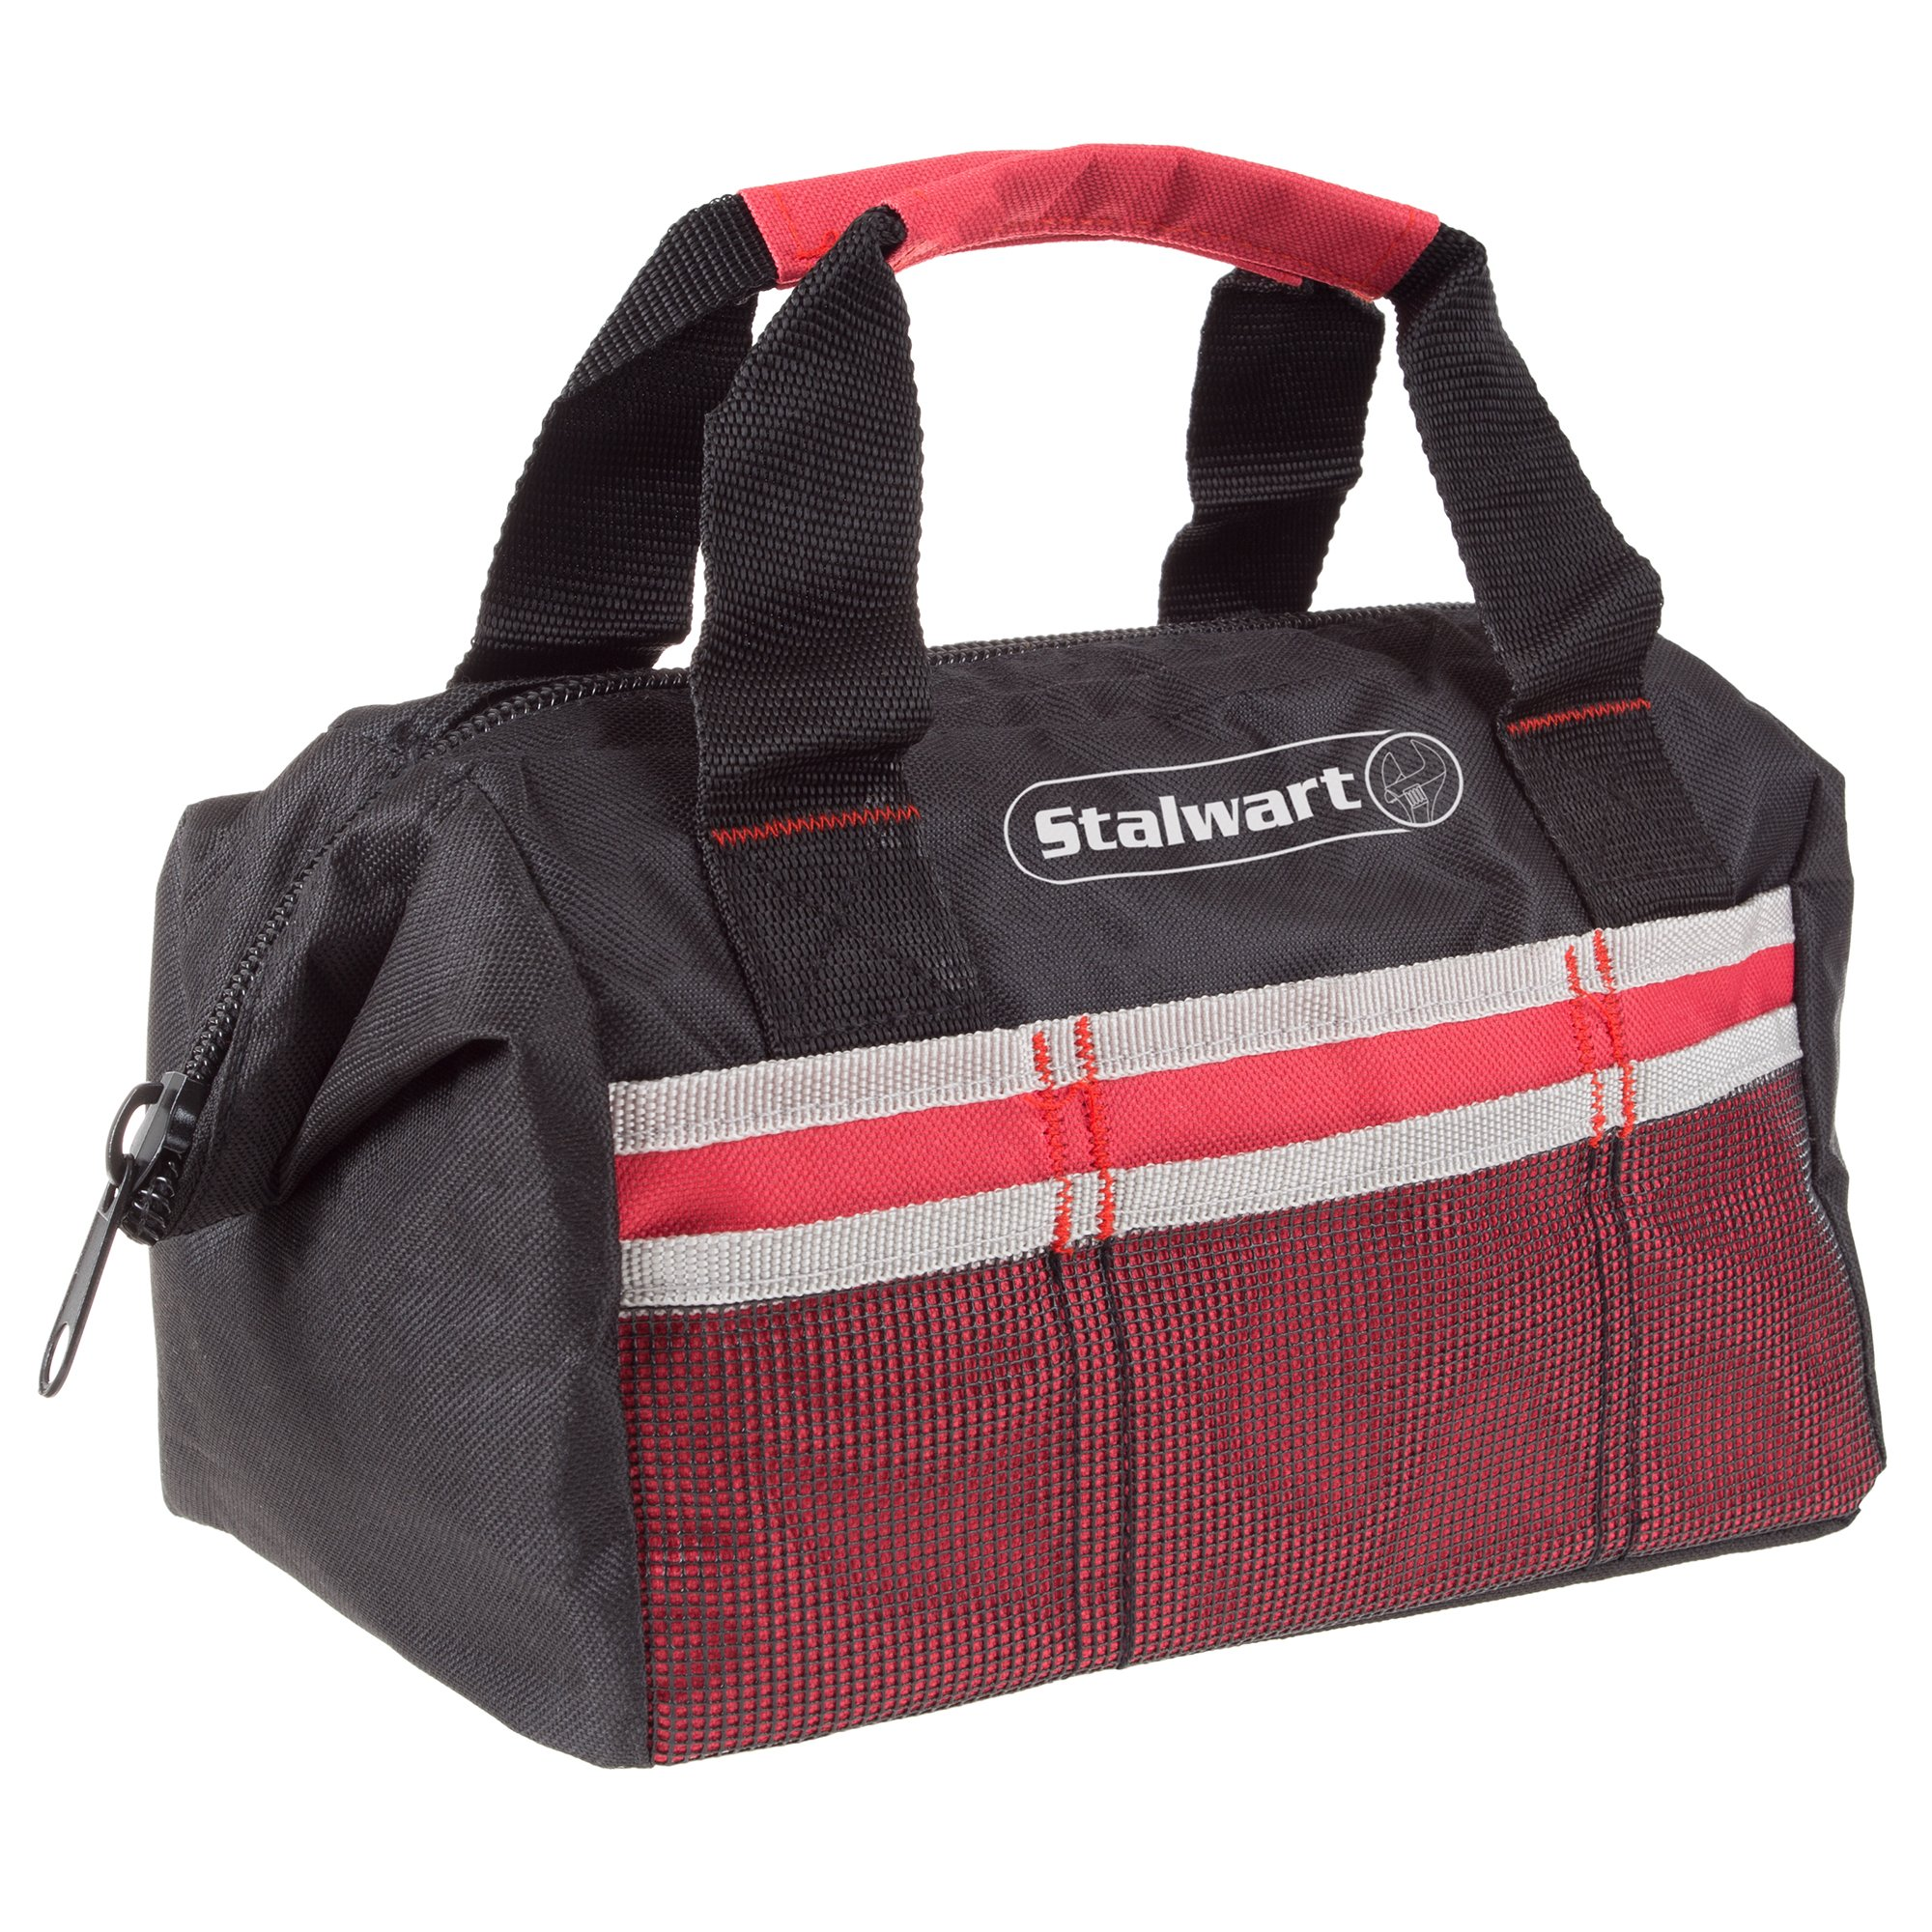 f37cc39488 Get Quotations · Soft Sided Tool Bag With Wide-Mouth Storage- Durable 12  Inch Compact Storage Pouch